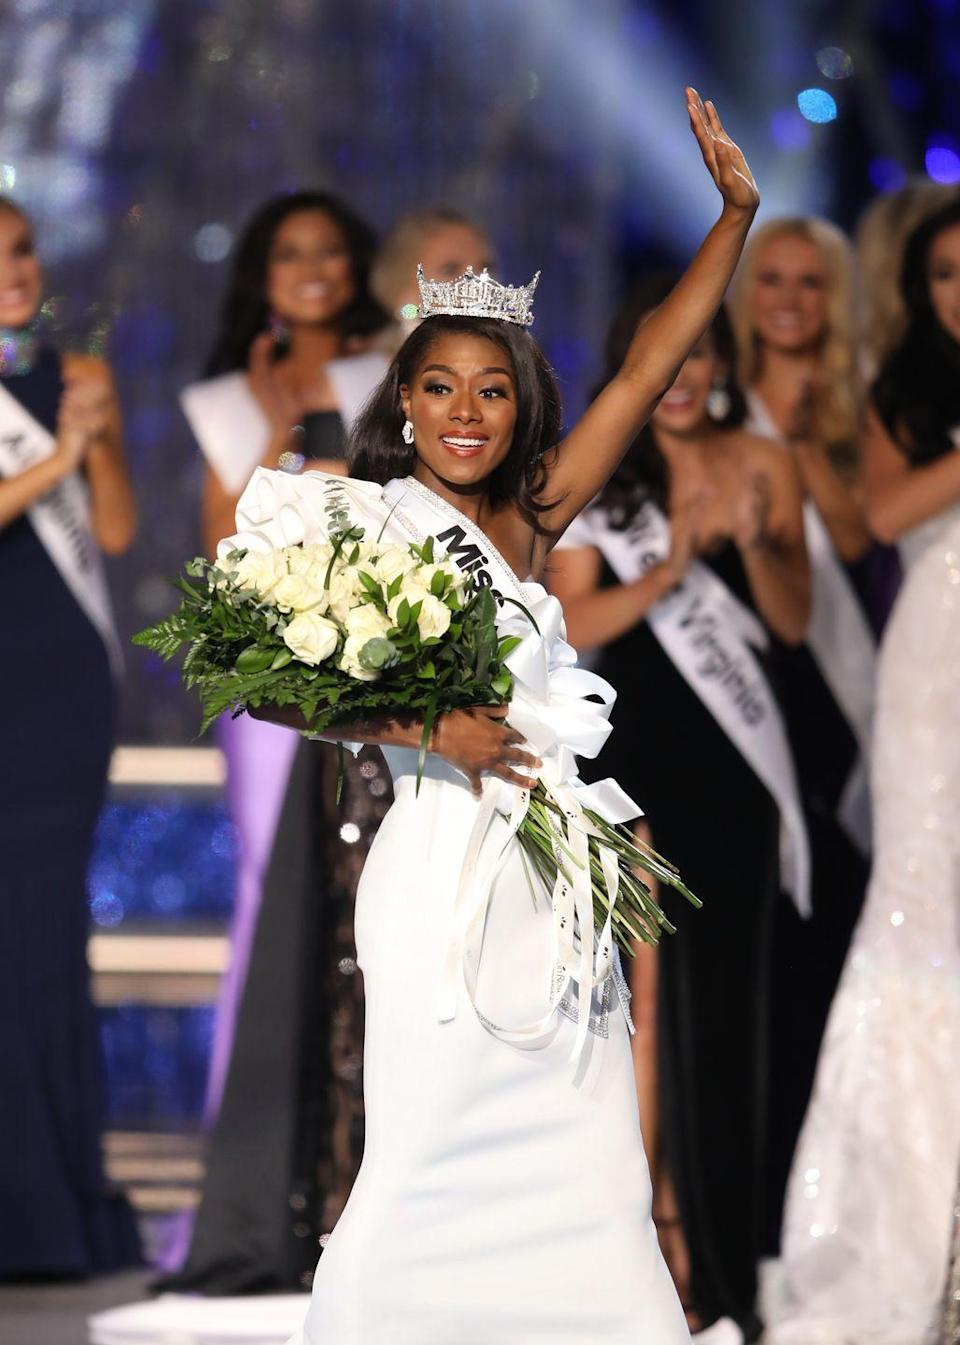 <p>Nia Franklin from North Carolina looked radiant as she started her reign as Miss America in a white one-shoulder evening gown.</p>